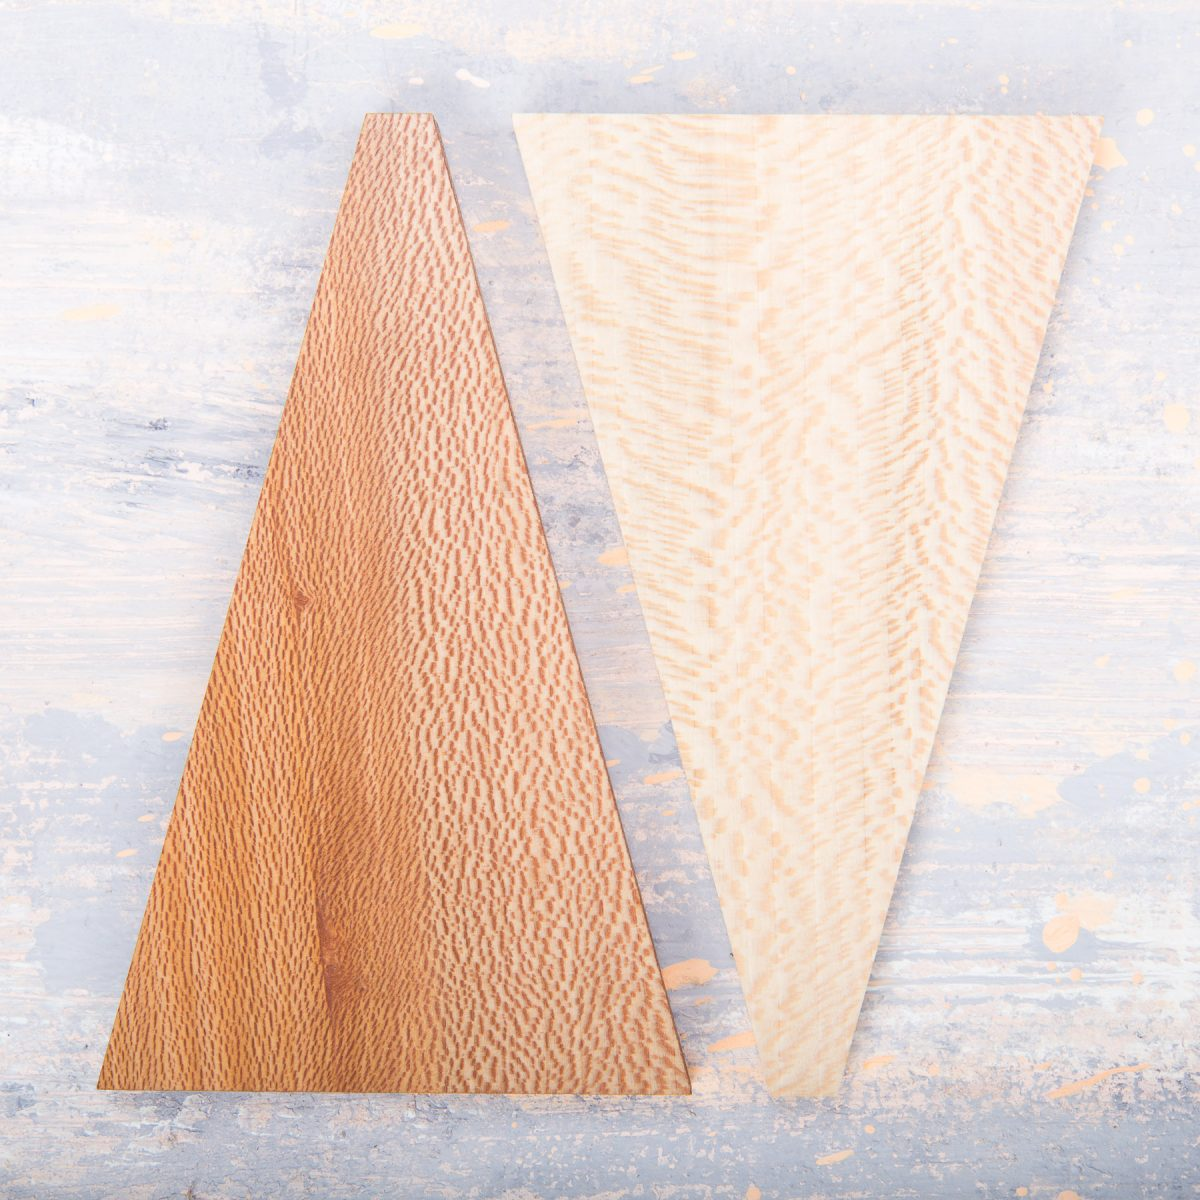 Jan Hendzel Studio samples english london plane lacewood-3